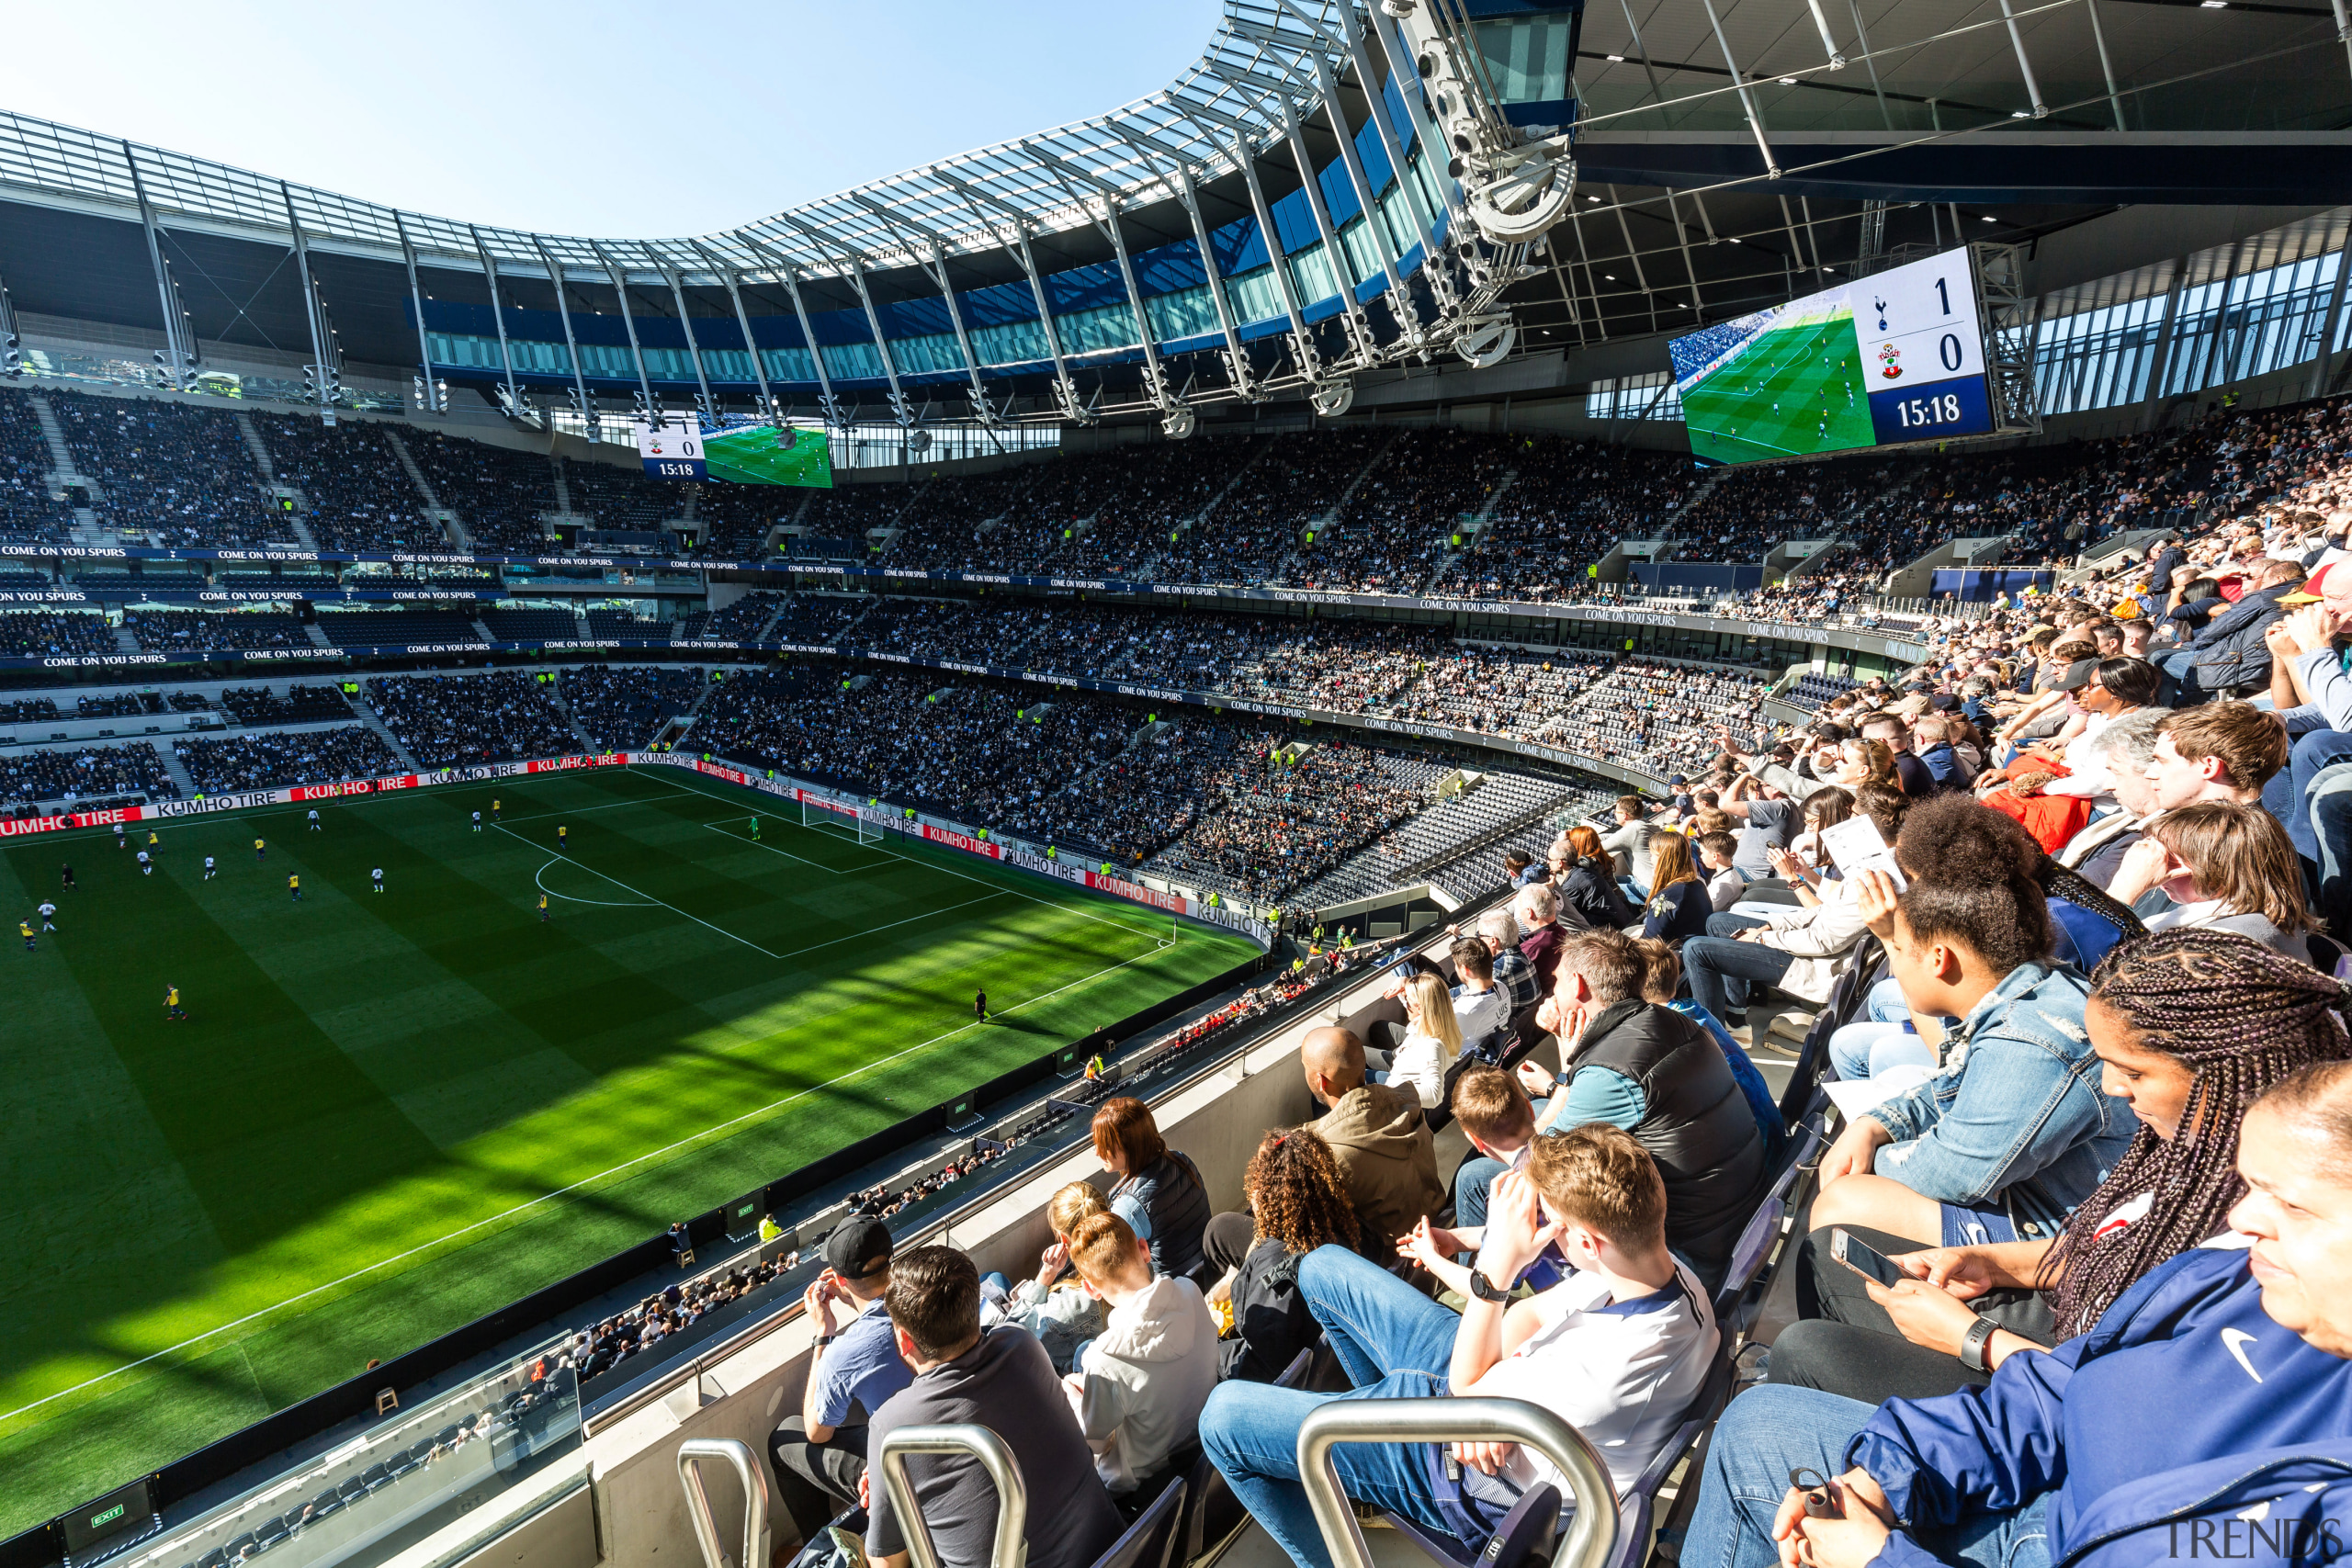 At the new Tottenham Hotspur stadium, this Premium architecture, arena, atmosphere, audience, ball game, championship, competition event, crowd, fan, grass, international rules football, leisure, people, player, product, soccer, soccer-specific stadium, sport venue, sports, stadium, team, team sport, black